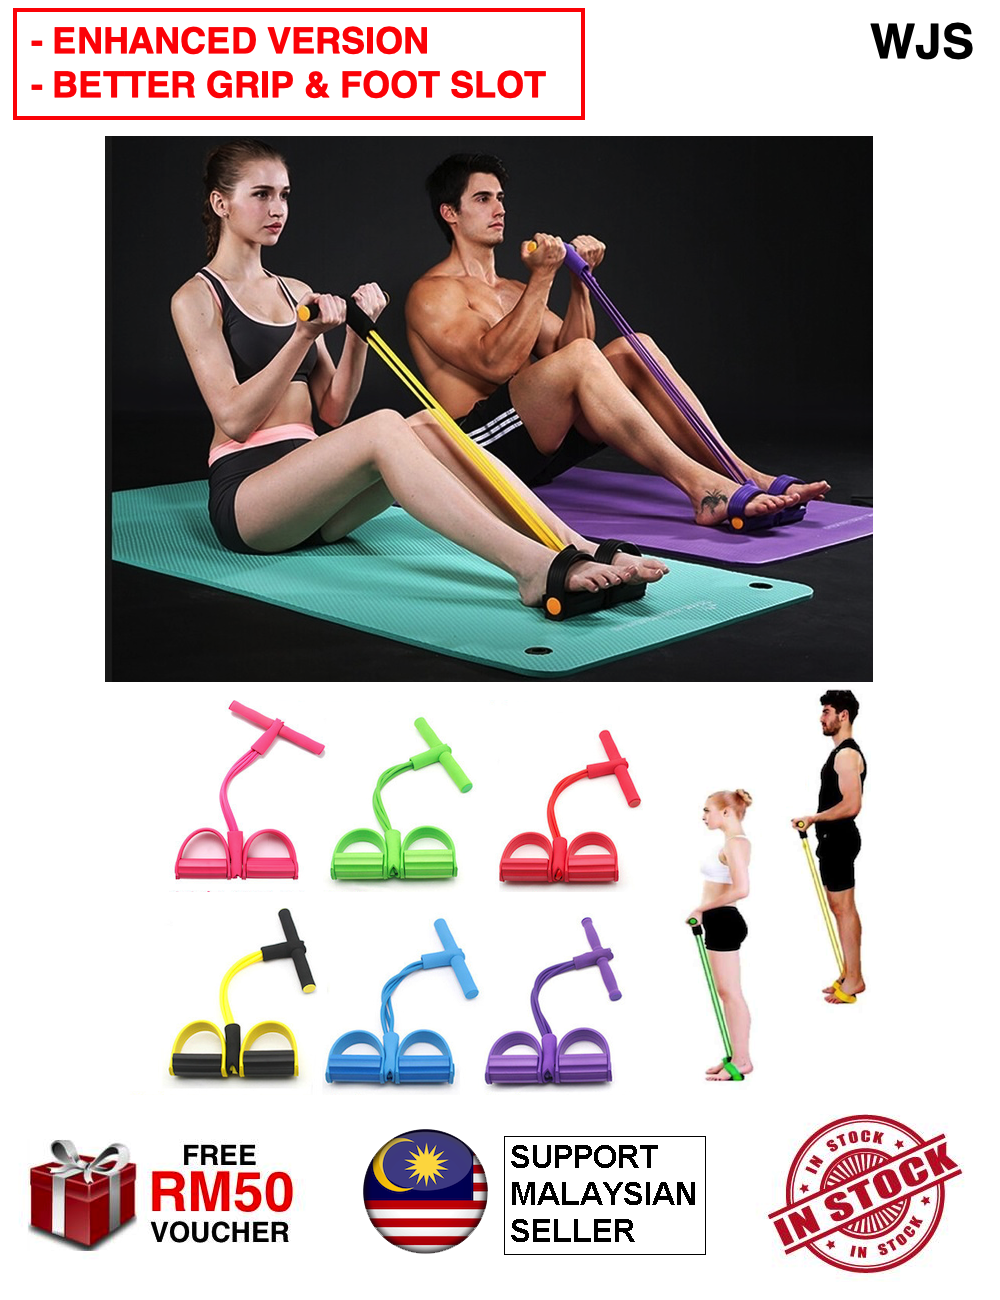 (ENHANCED VERSION) WJS Gym Fitness Yoga Sit-up Equipment Pull Up Rope Elastic Band Pullup Sit Up Home Gym Exercise Workout Pilate Cardio Fitness MULTICOLOR [FREE RM 50 VOUCHER]